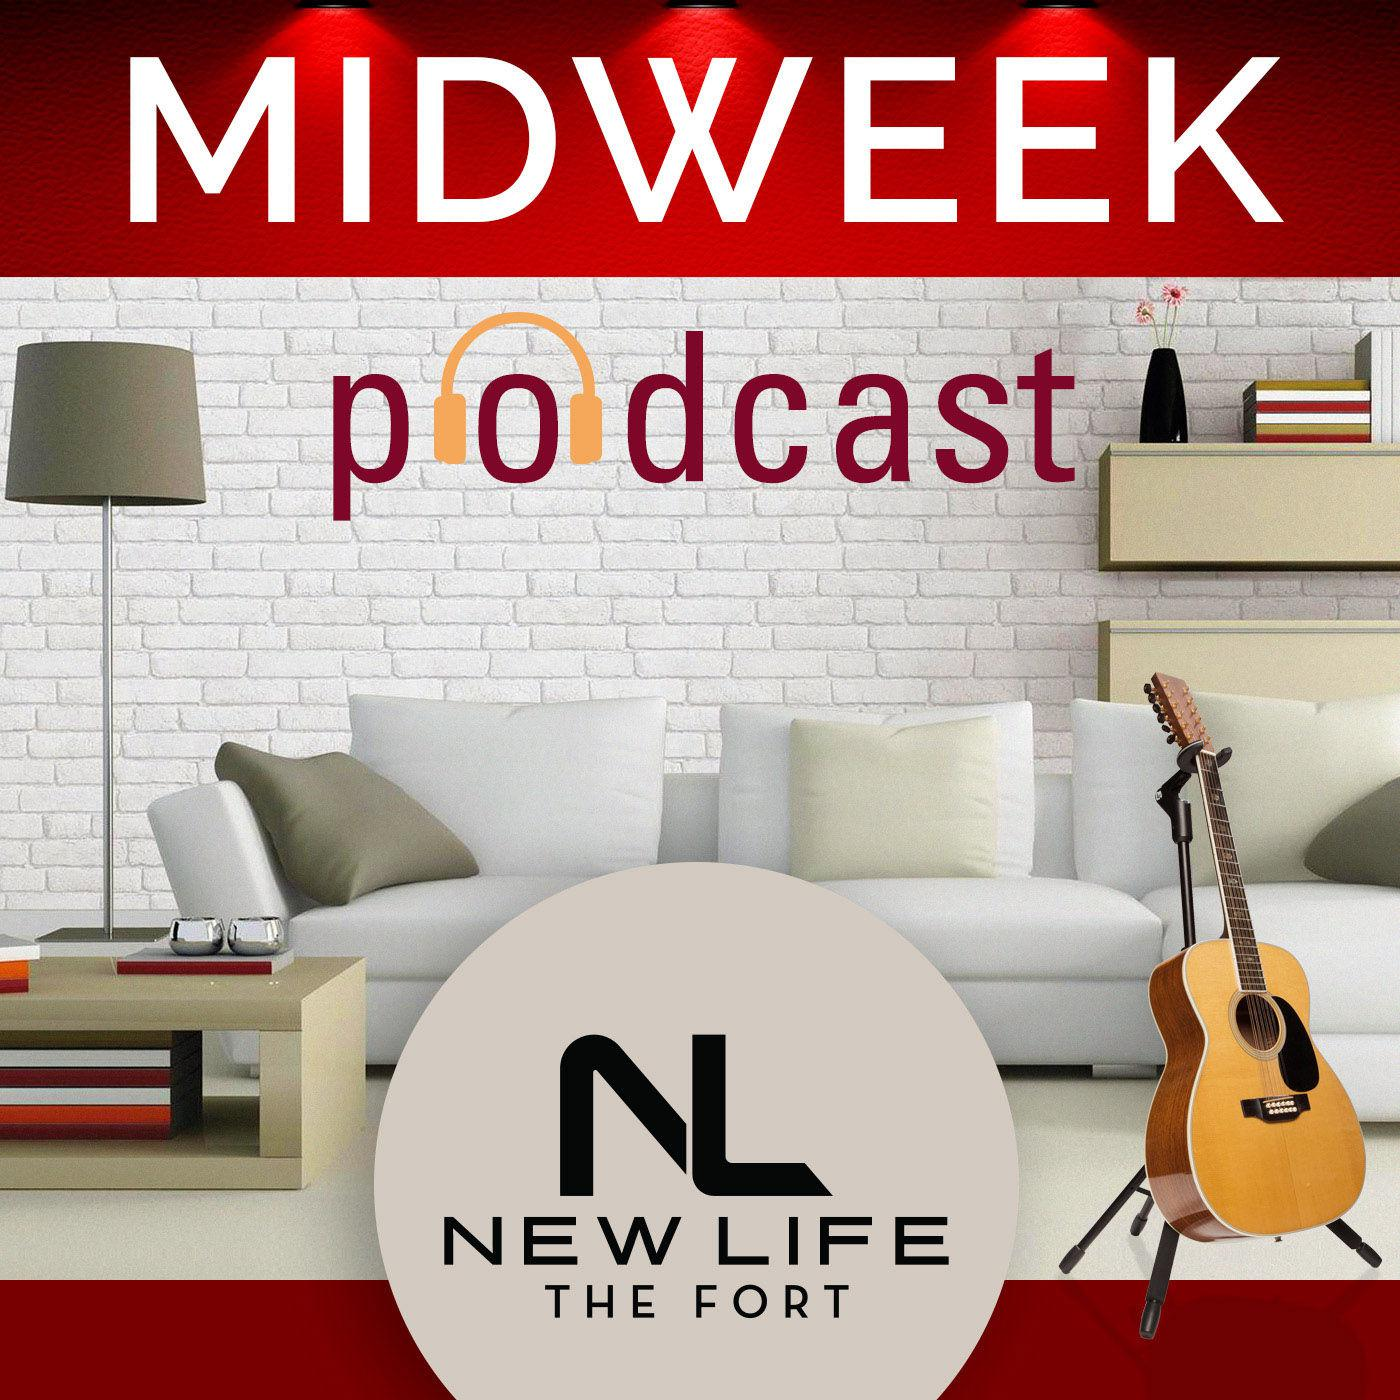 New Life the Fort Midweek (podcast) - New Life The Fort   Listen Notes